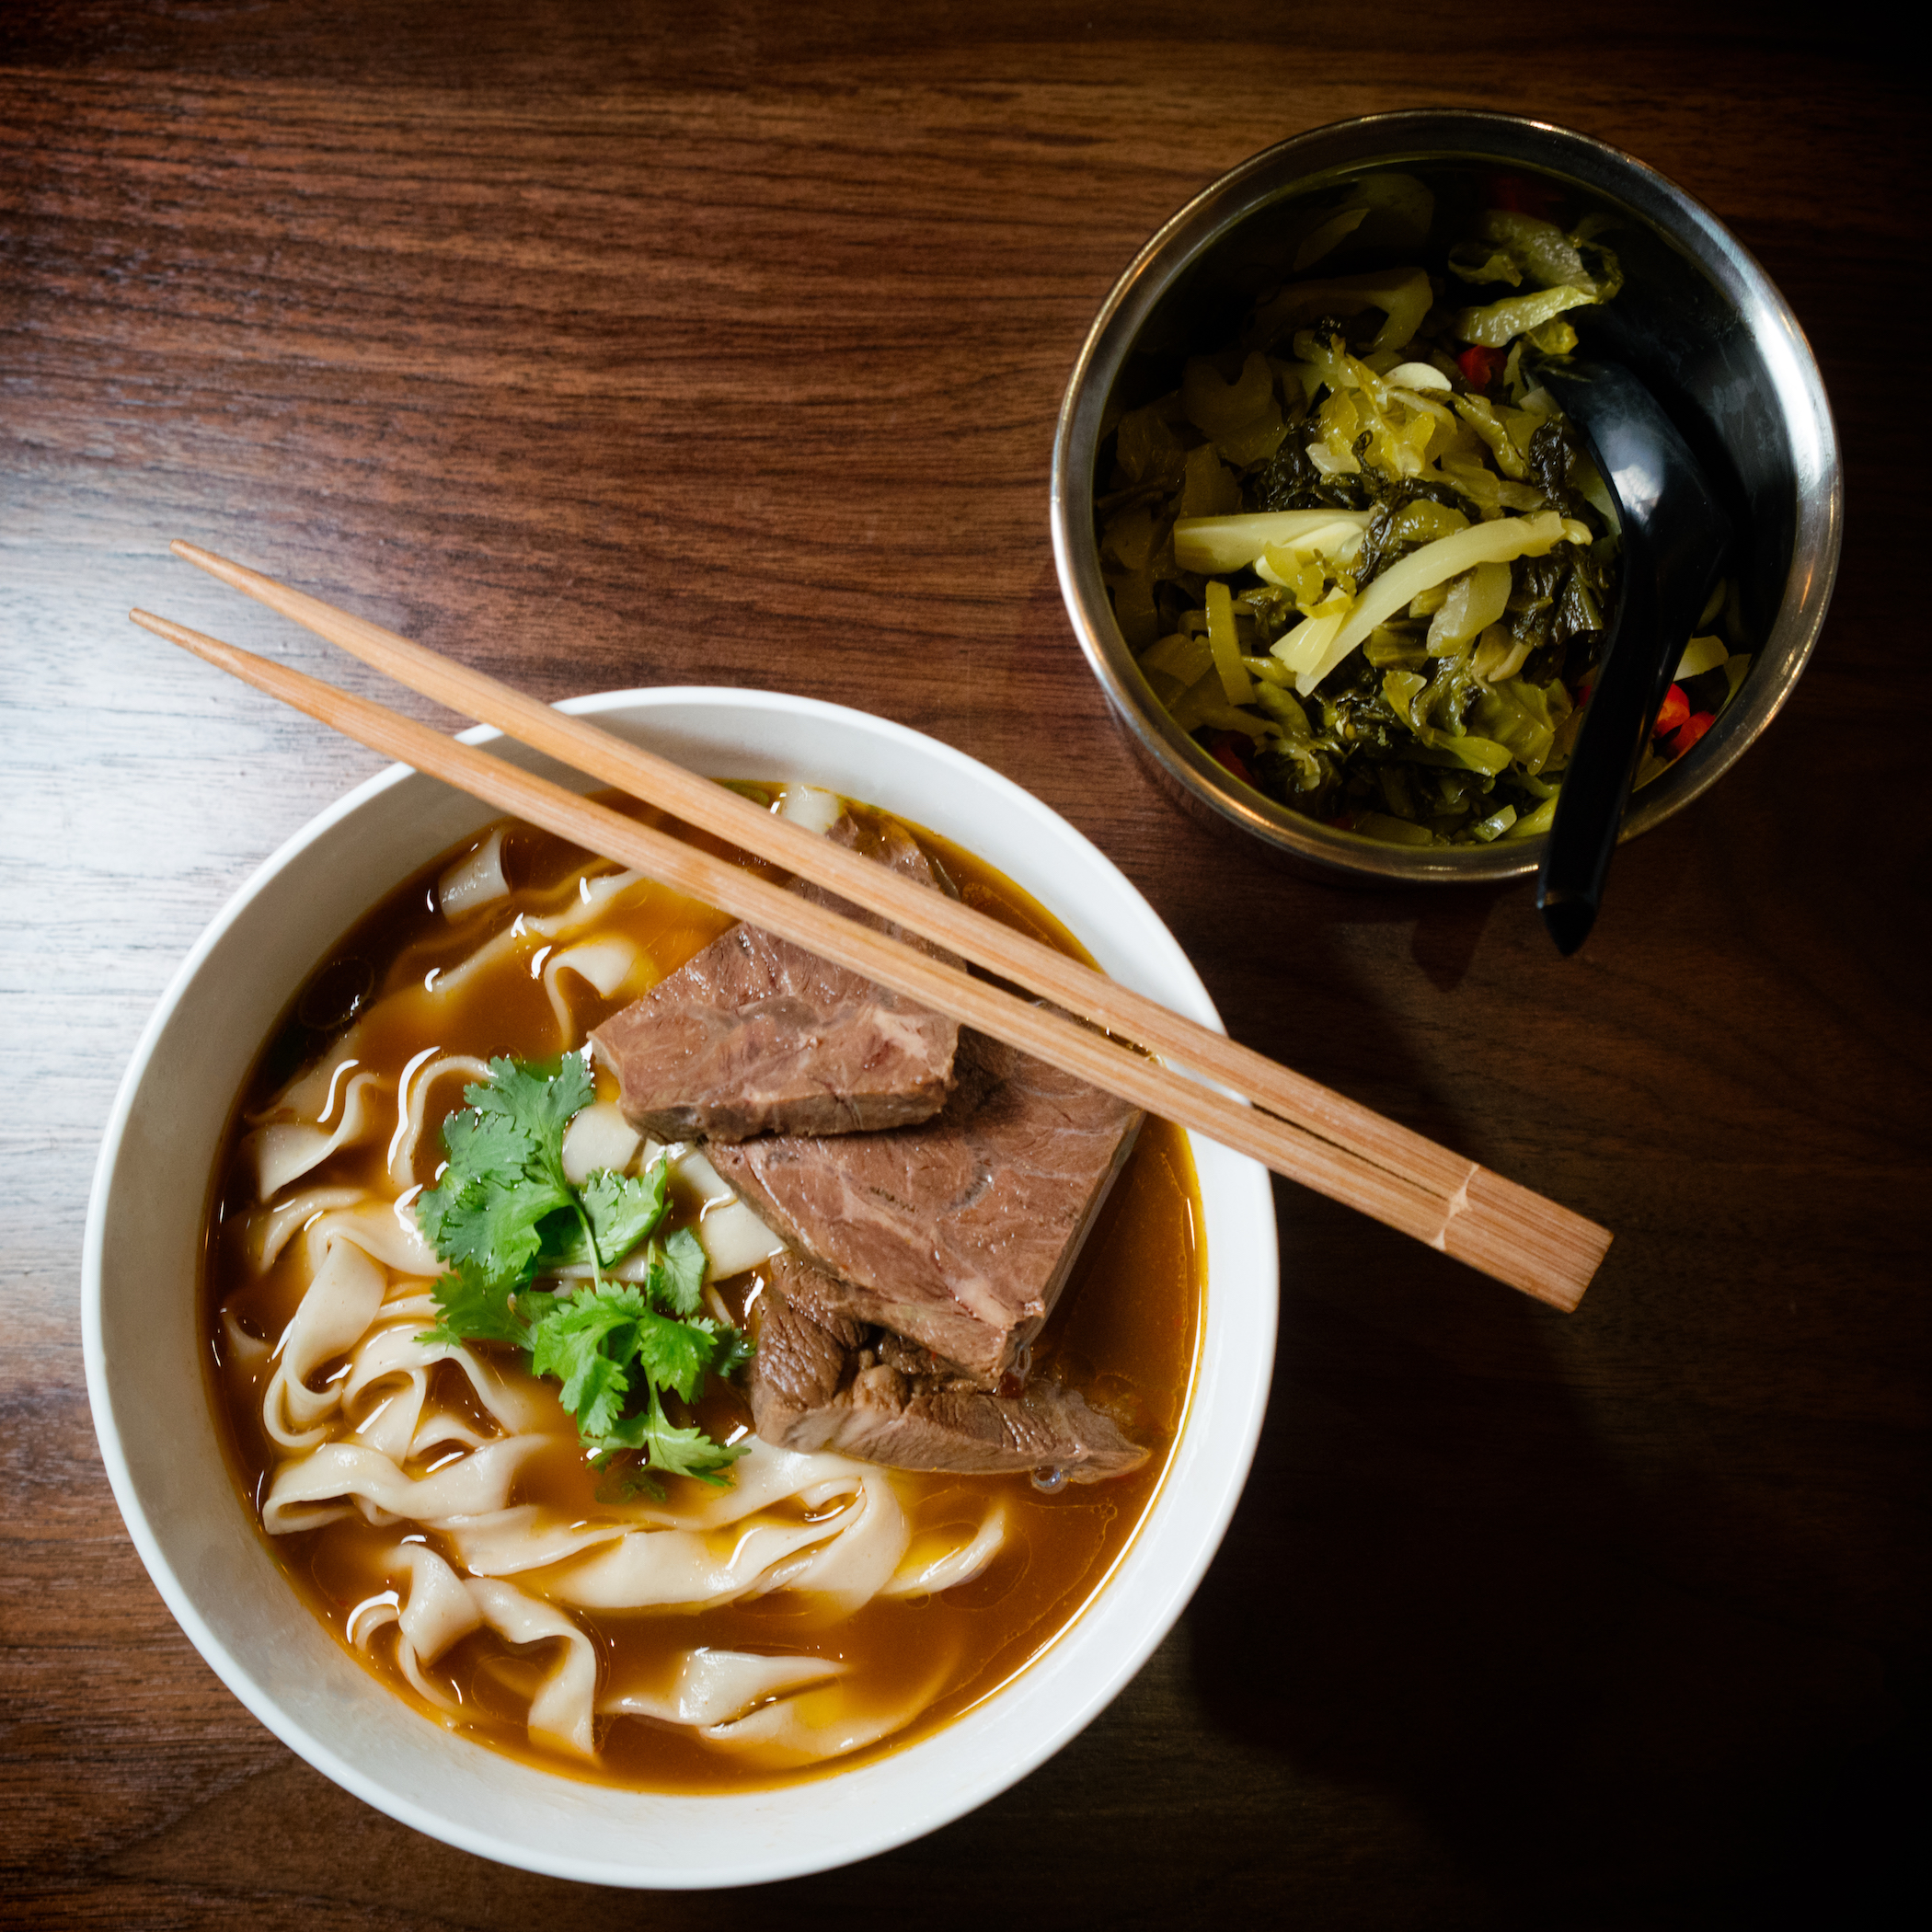 ho foods beef noodle soup and mustard greens